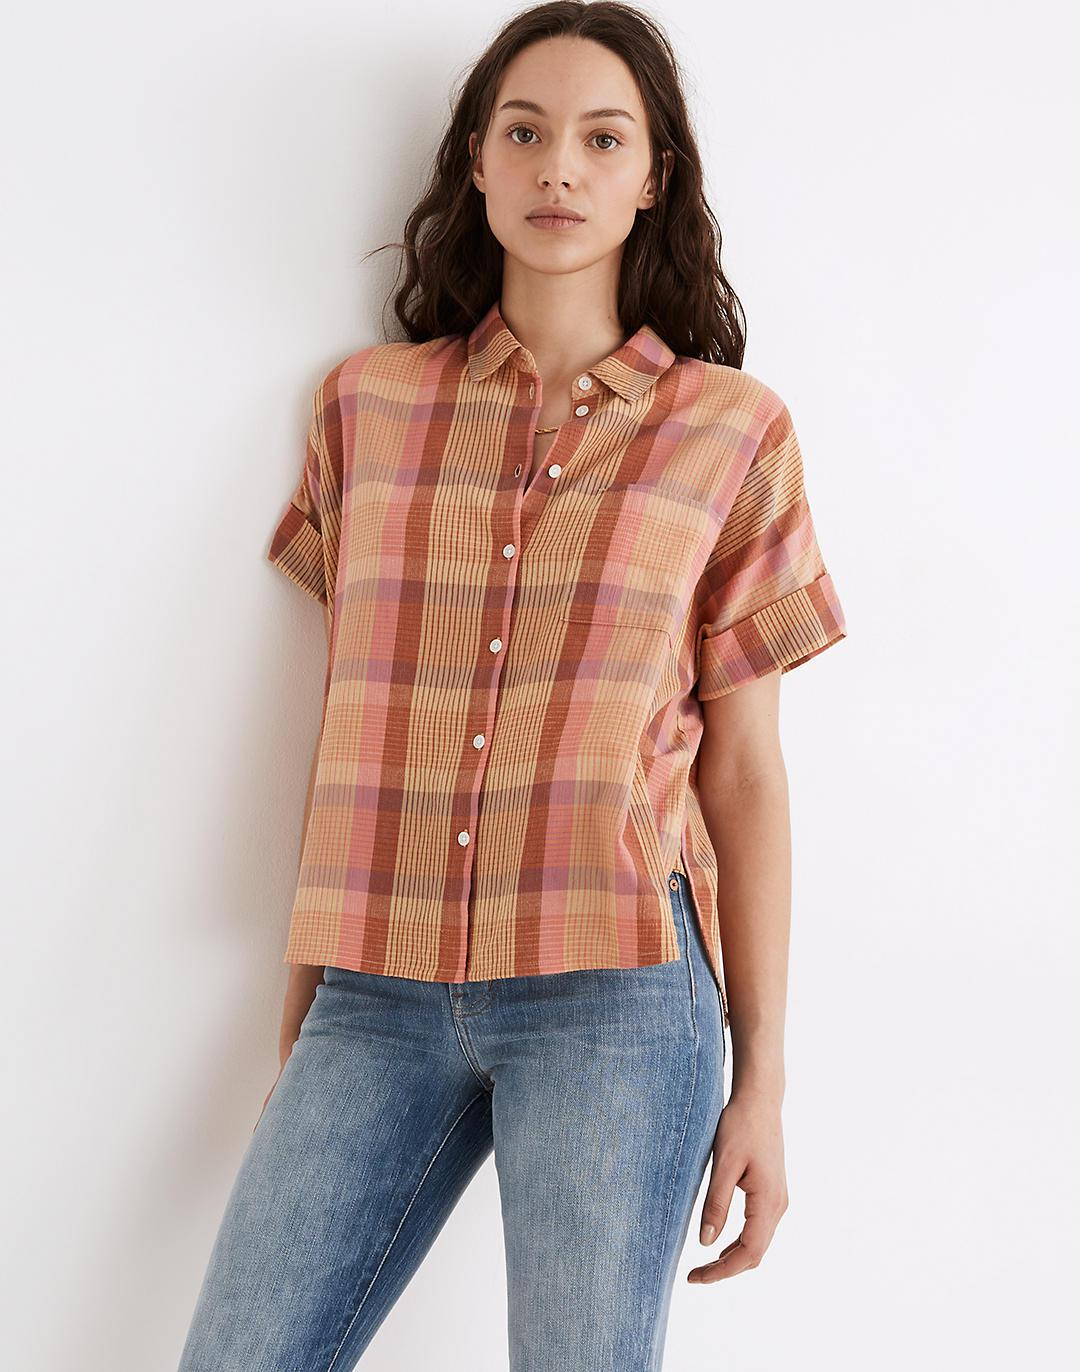 Daily Shirt in Neon Madras Plaid